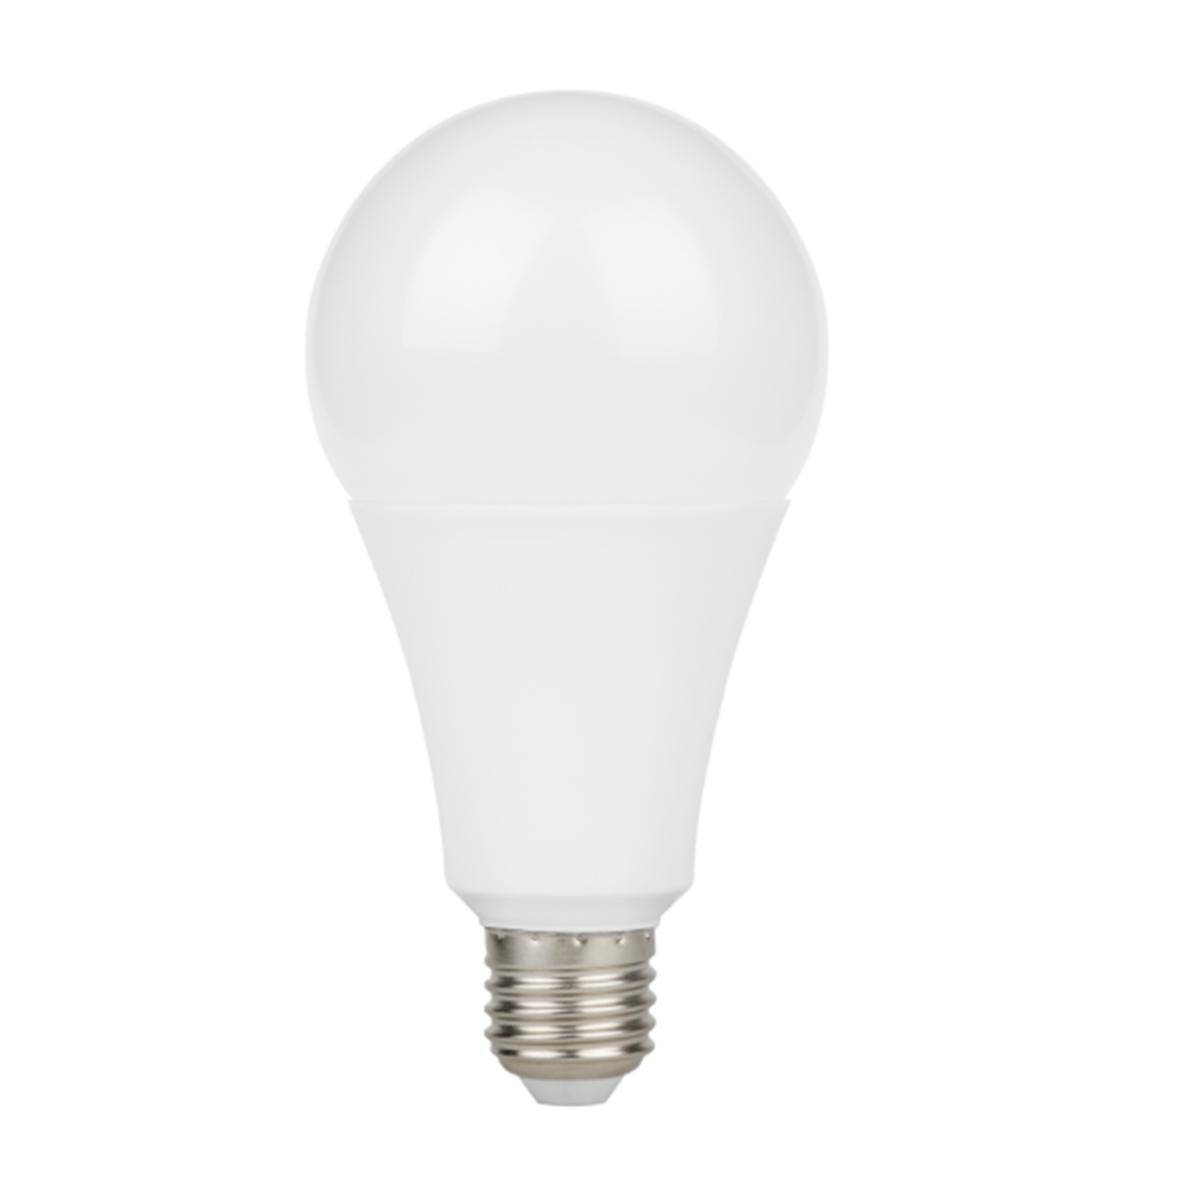 SILAMP Ampoule LED E27 9W A60 220V 230° - Blanc Froid 6000K - 8000K